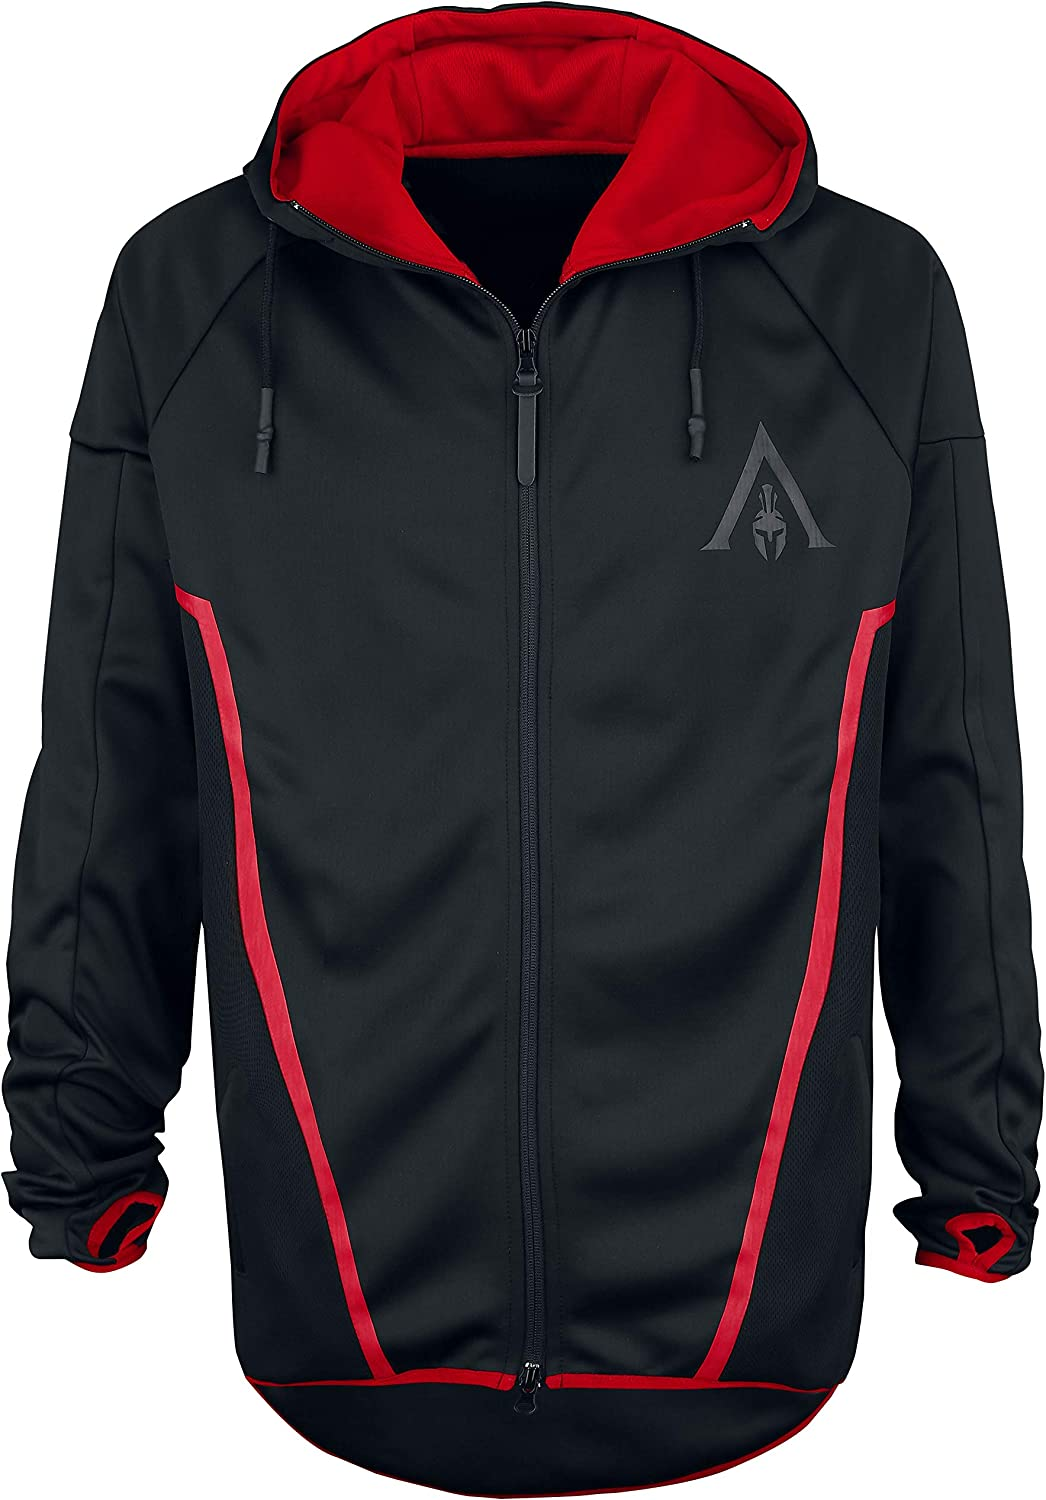 Assassin's Creed Sweatshirt Odyssey - Technical Hexagonal Men's Hoodie Black